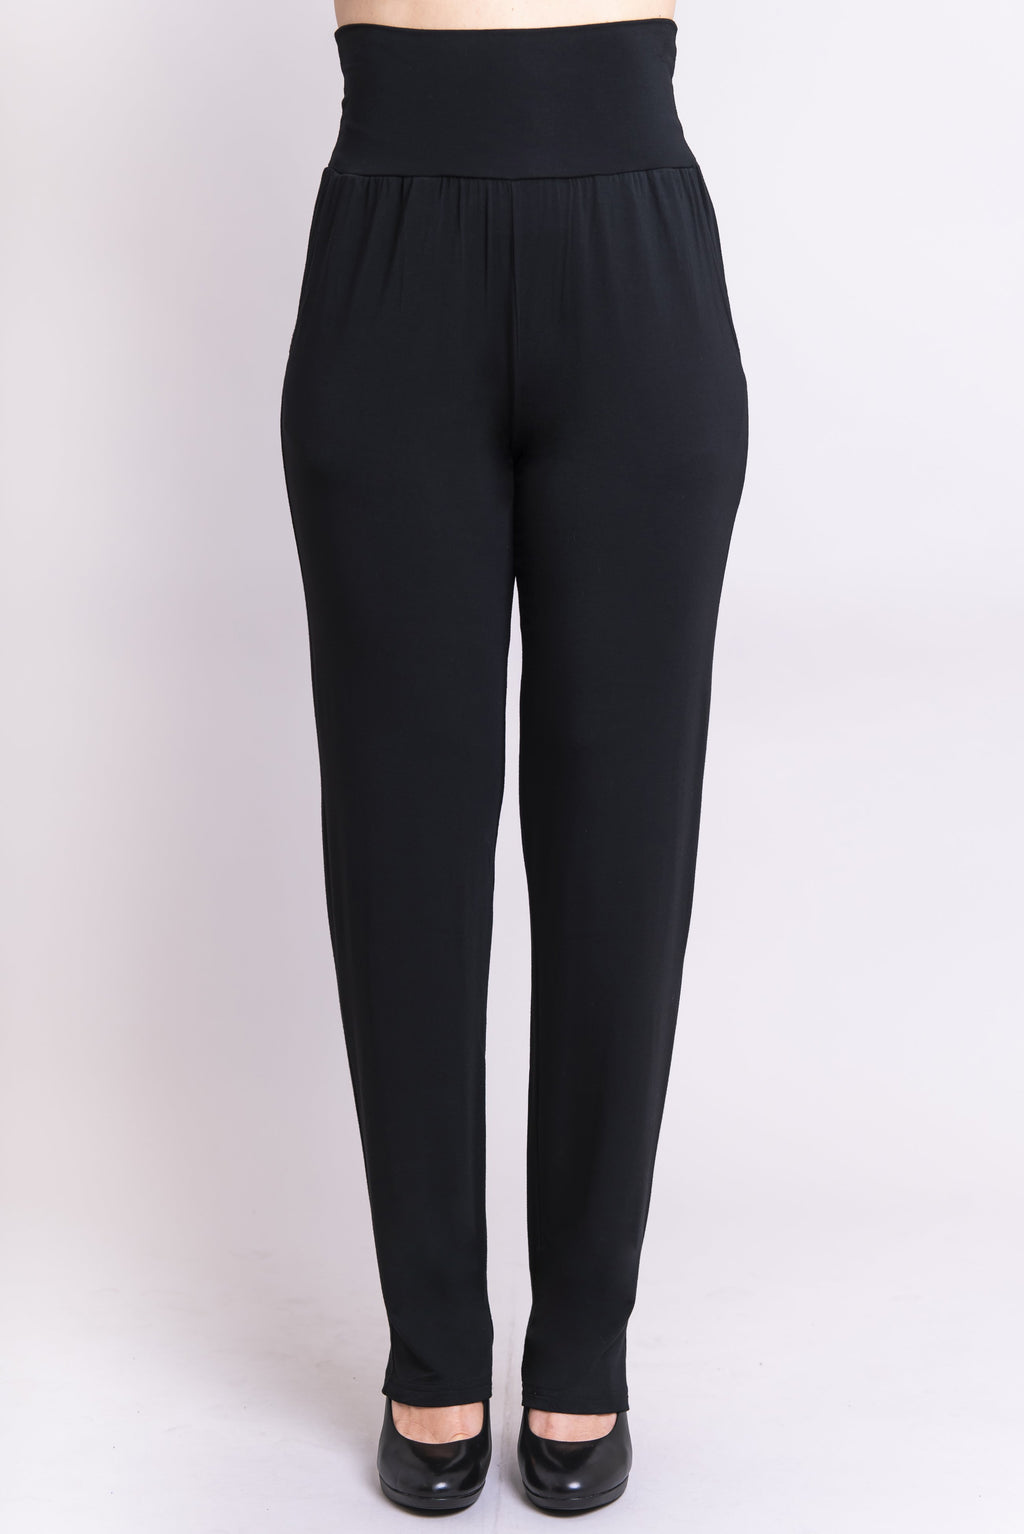 Clair Tall, Black, Bamboo - Blue Sky Clothing Co